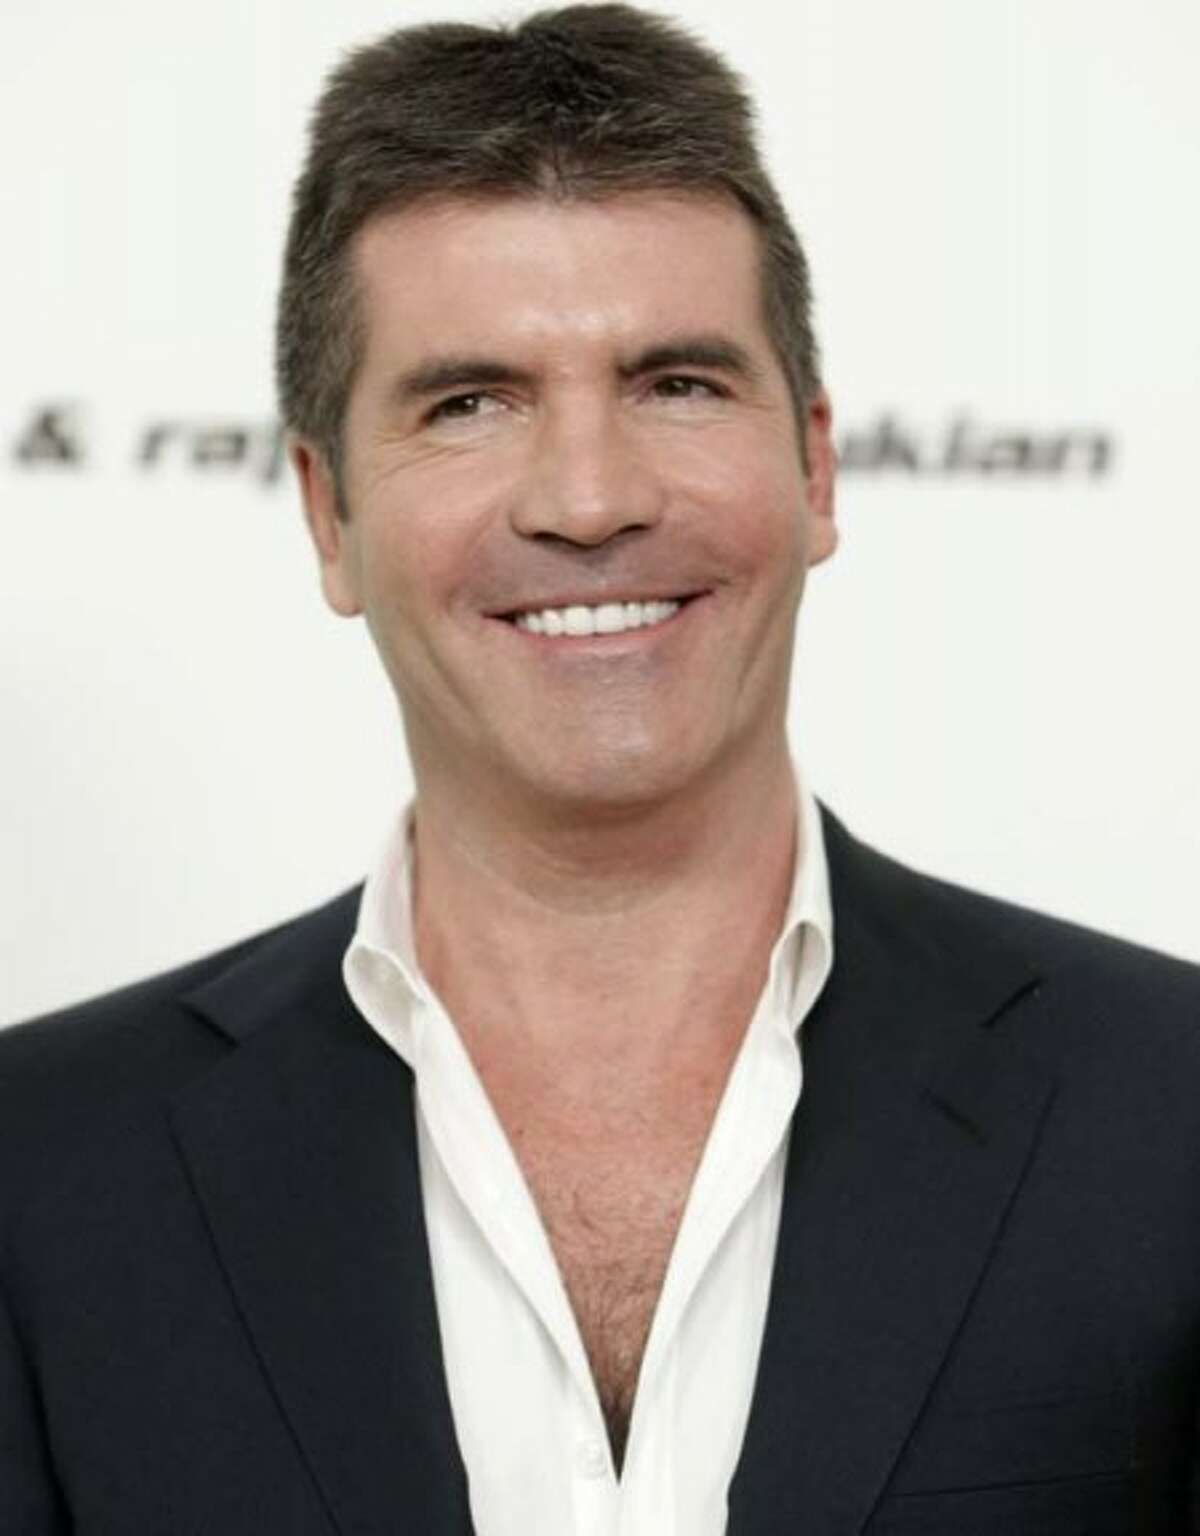 """FILE - In this Feb. 22, 2009 file photo, television personality Simon Cowell poses in West Hollywood, Calif. Cowell said Monday, Jan. 11, 2010 that this will be his last season on """"American Idol."""" (AP Photo/Dan Steinberg, file)"""